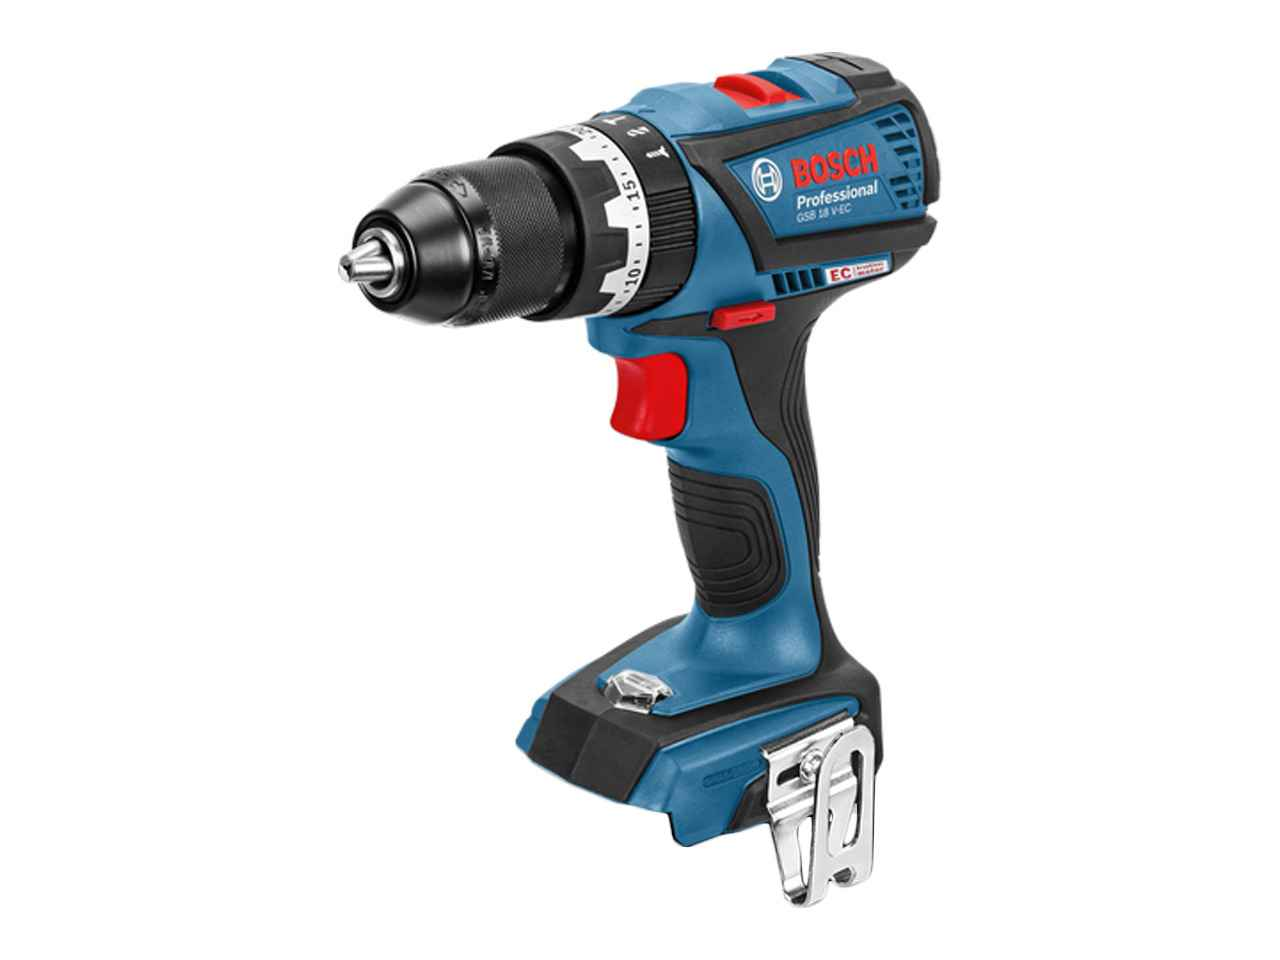 bosch gsb 18v ecn 18v brushless combi drill bare unit naked gsb18vecn ebay. Black Bedroom Furniture Sets. Home Design Ideas